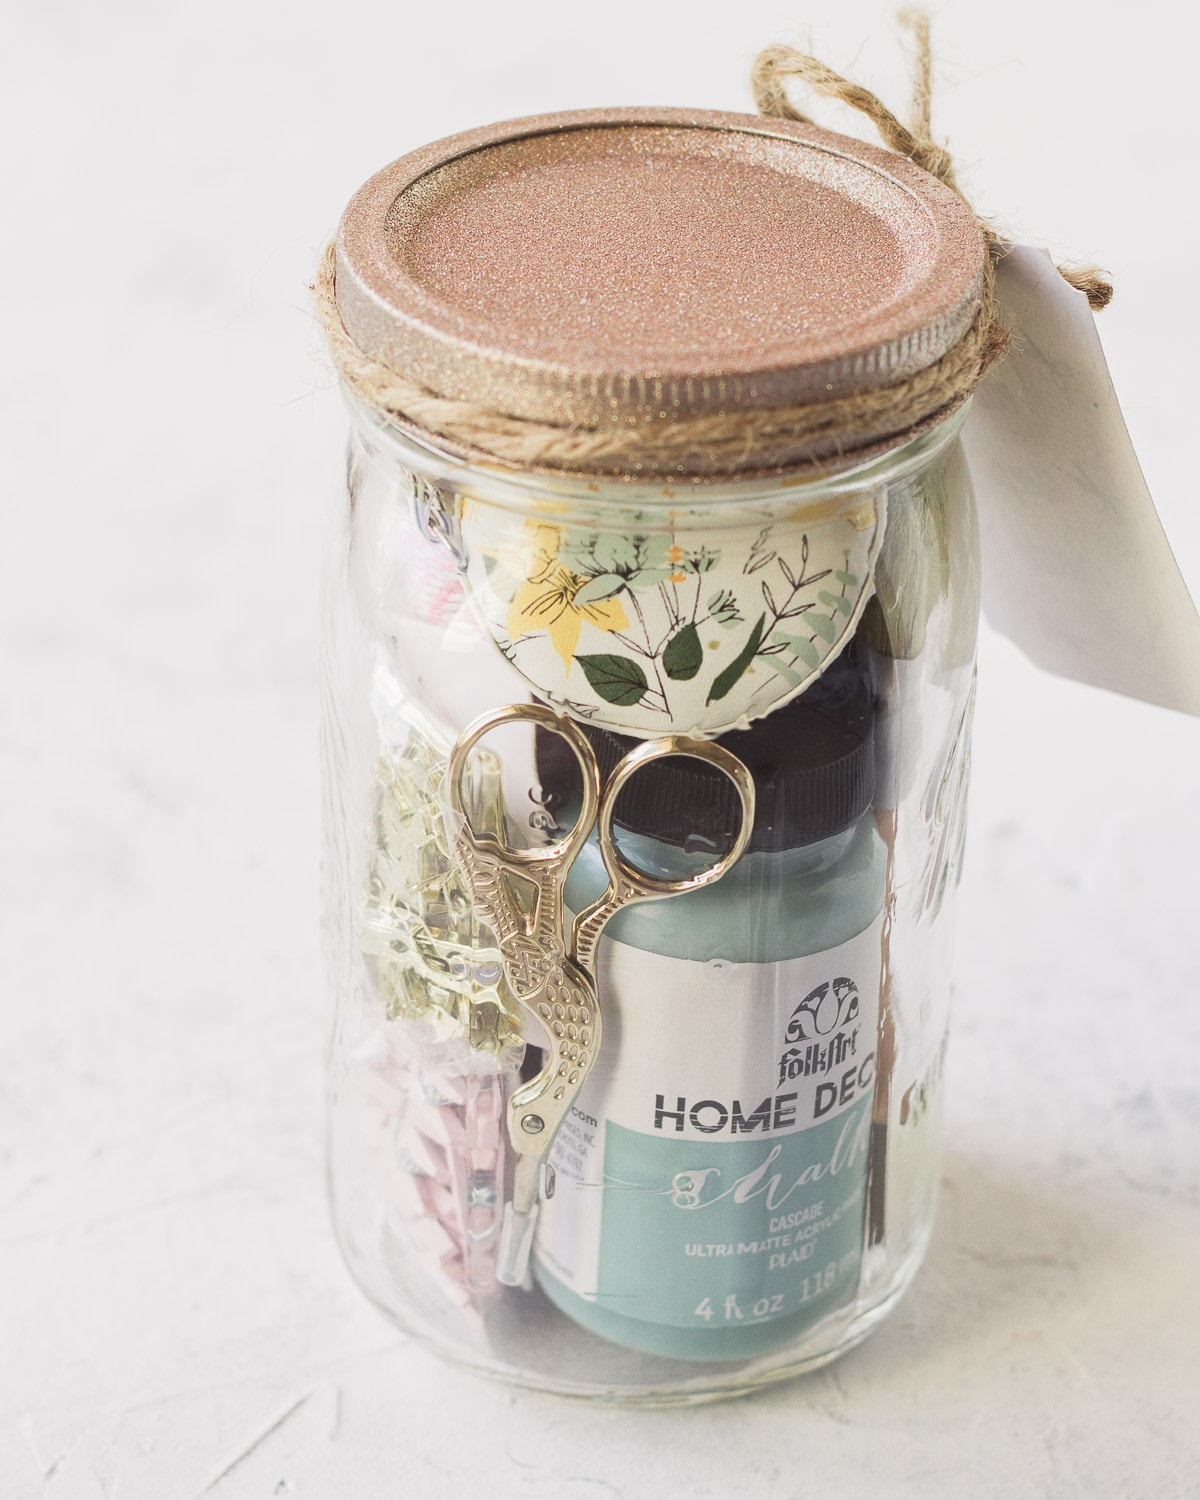 Embroidery scissors, chalk paint, and various craft supplies in a mason jar.